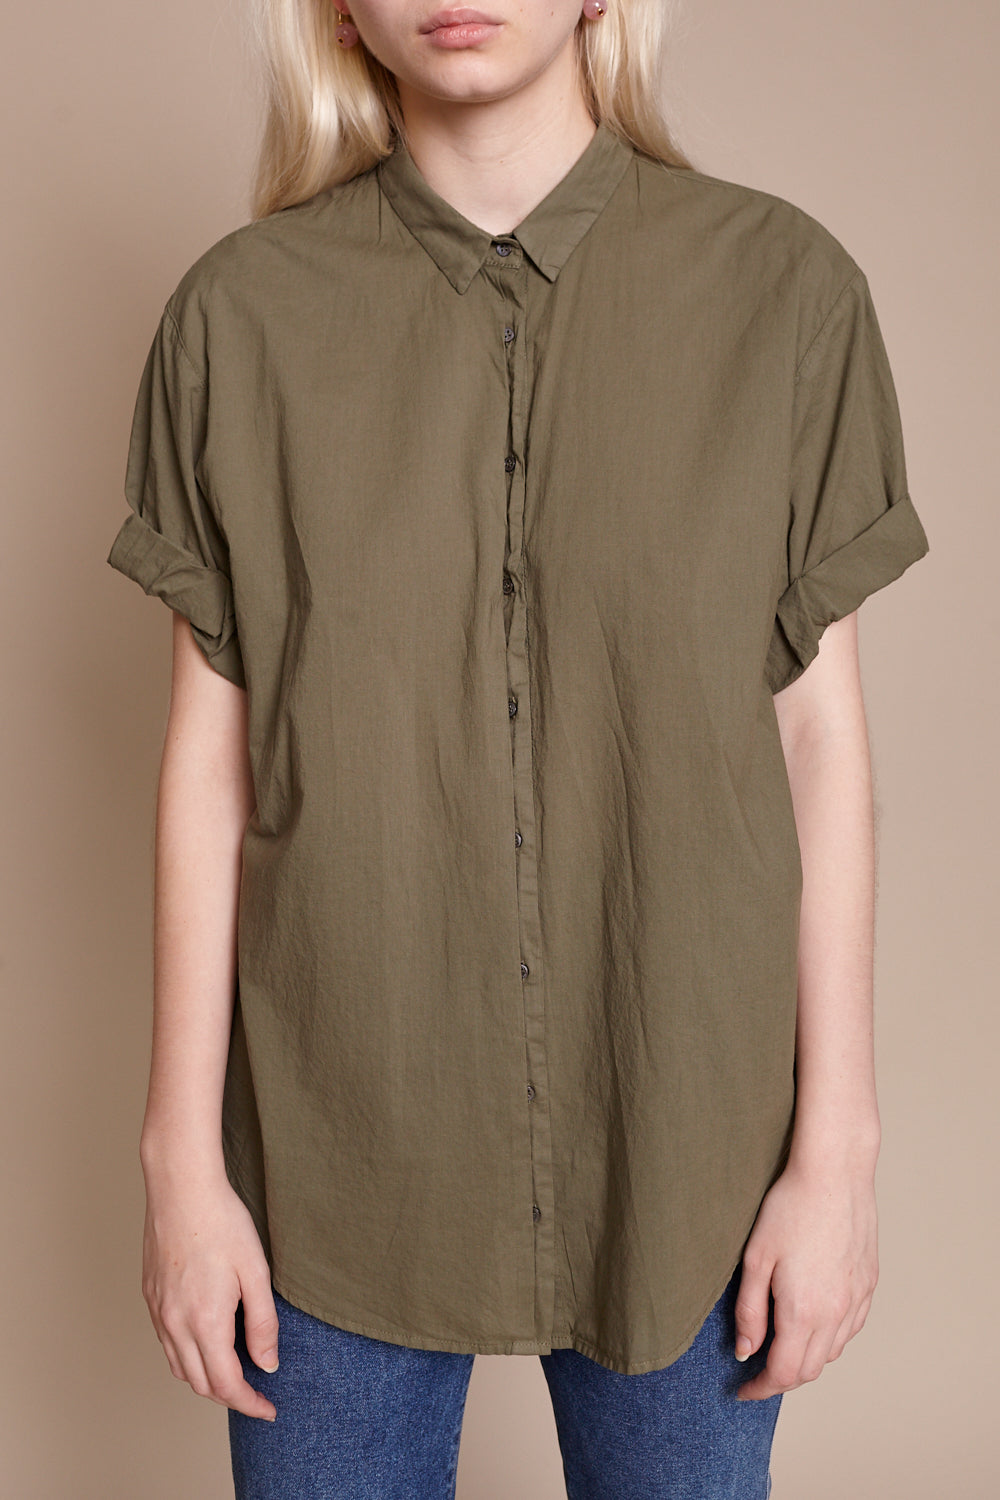 Channing Shirt in Bottle Green